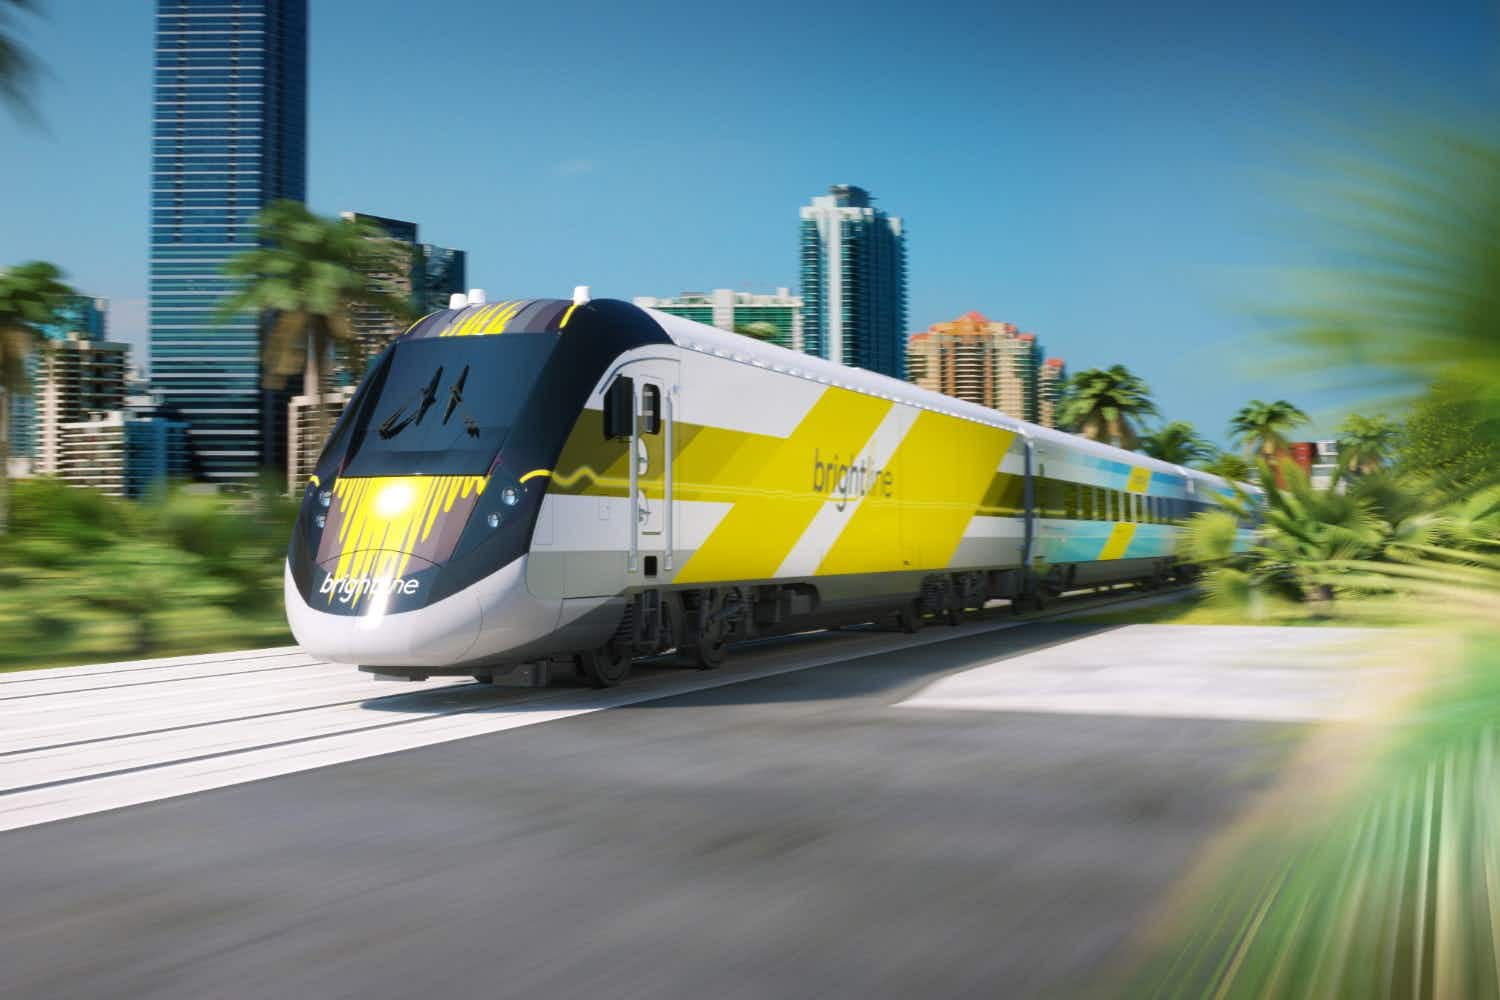 New express rail line to connect Miami and Orlando in three hours